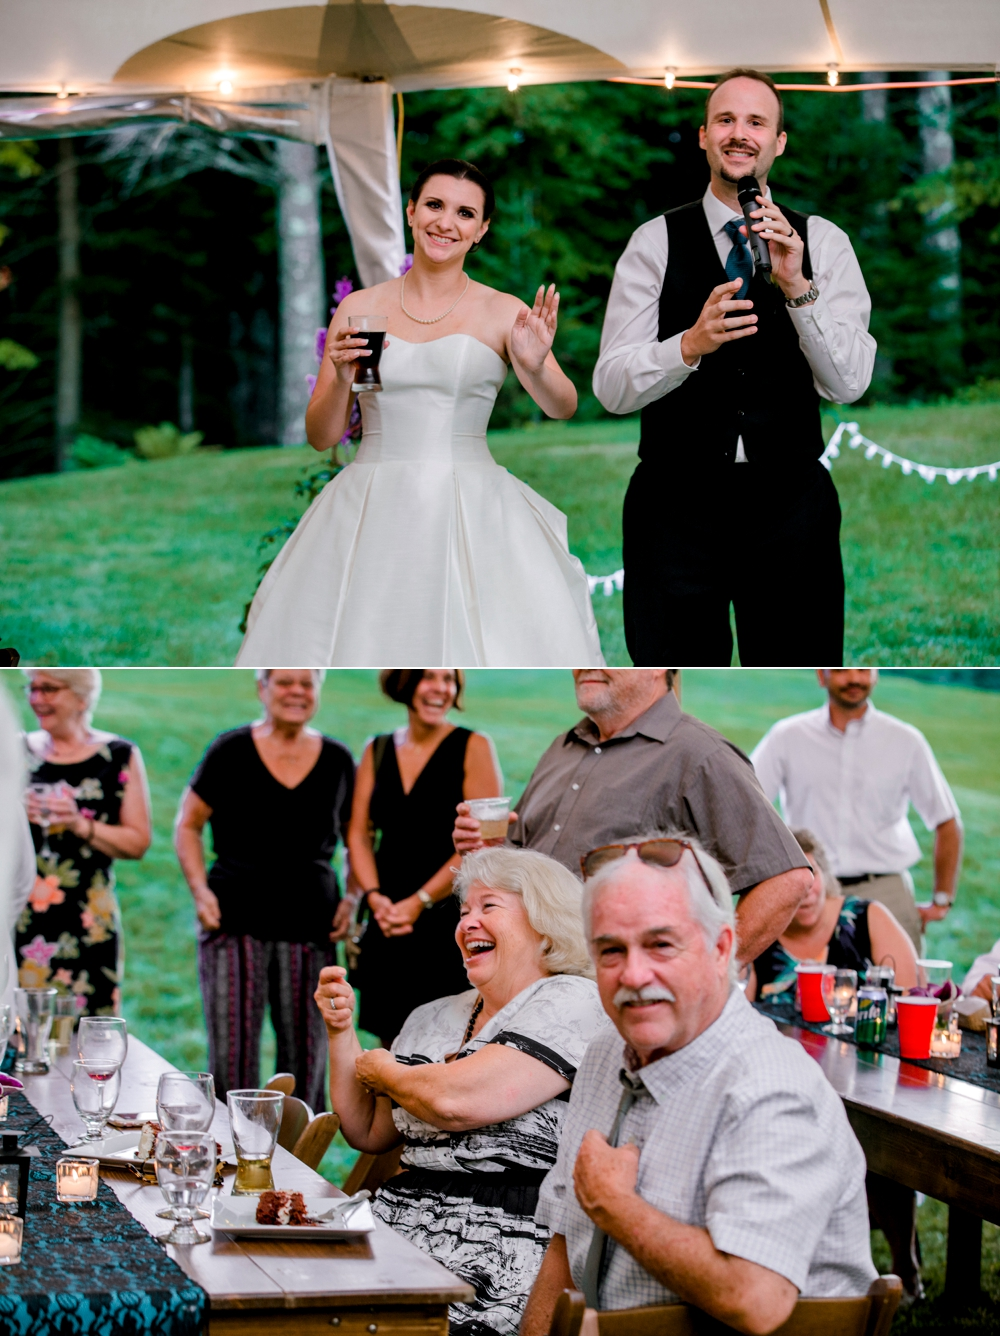 SomerbyJonesPhotography__VermontWedding_VTWedding_BackyardVermontWedding_0043.jpg